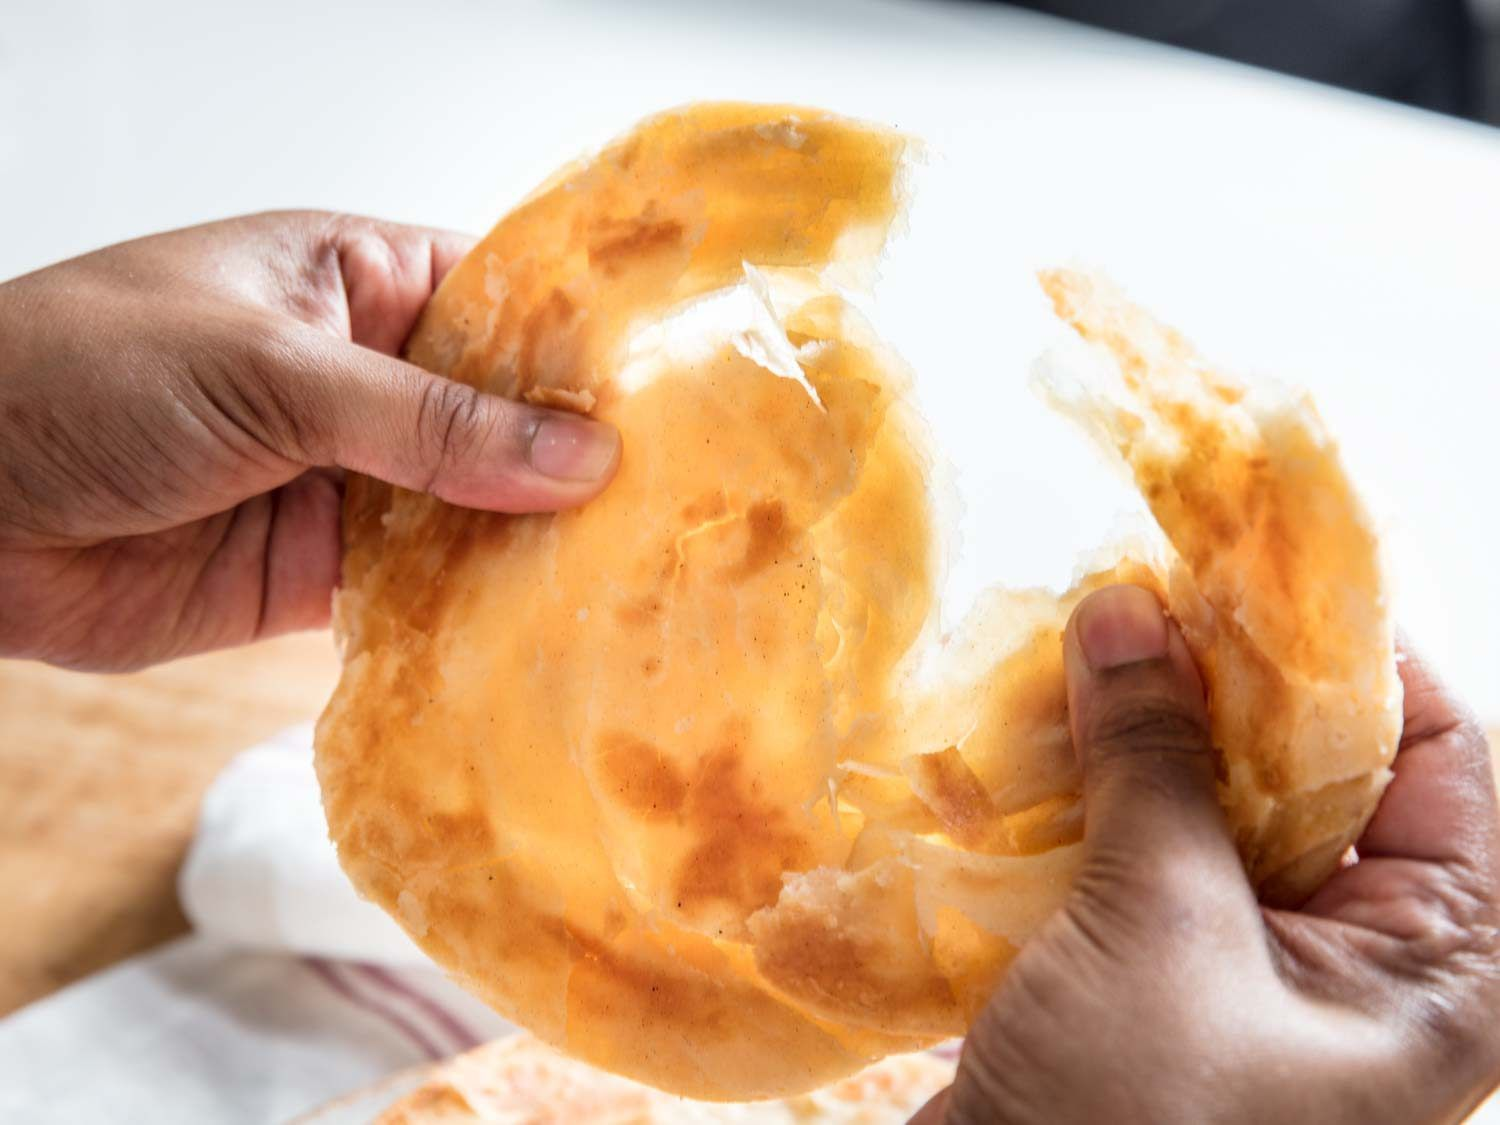 Paratha (Indian flatbread) being pulled apart by two hands.